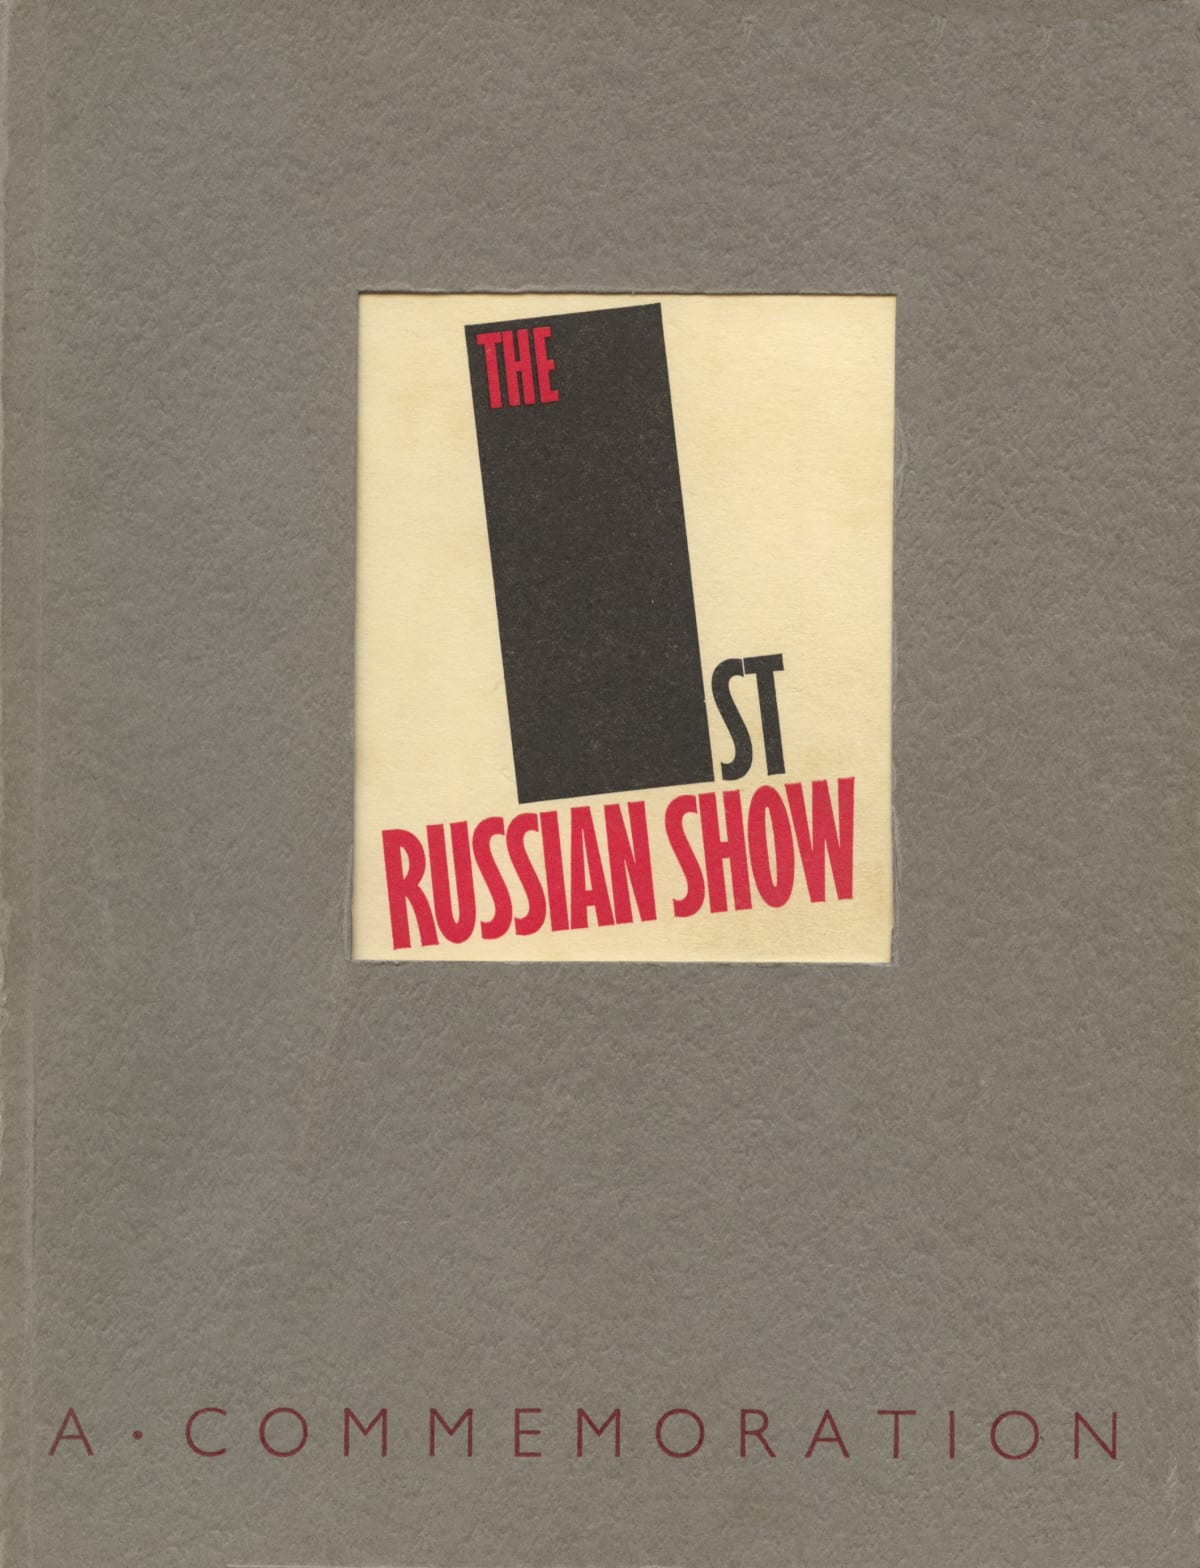 The 1st Russian Show